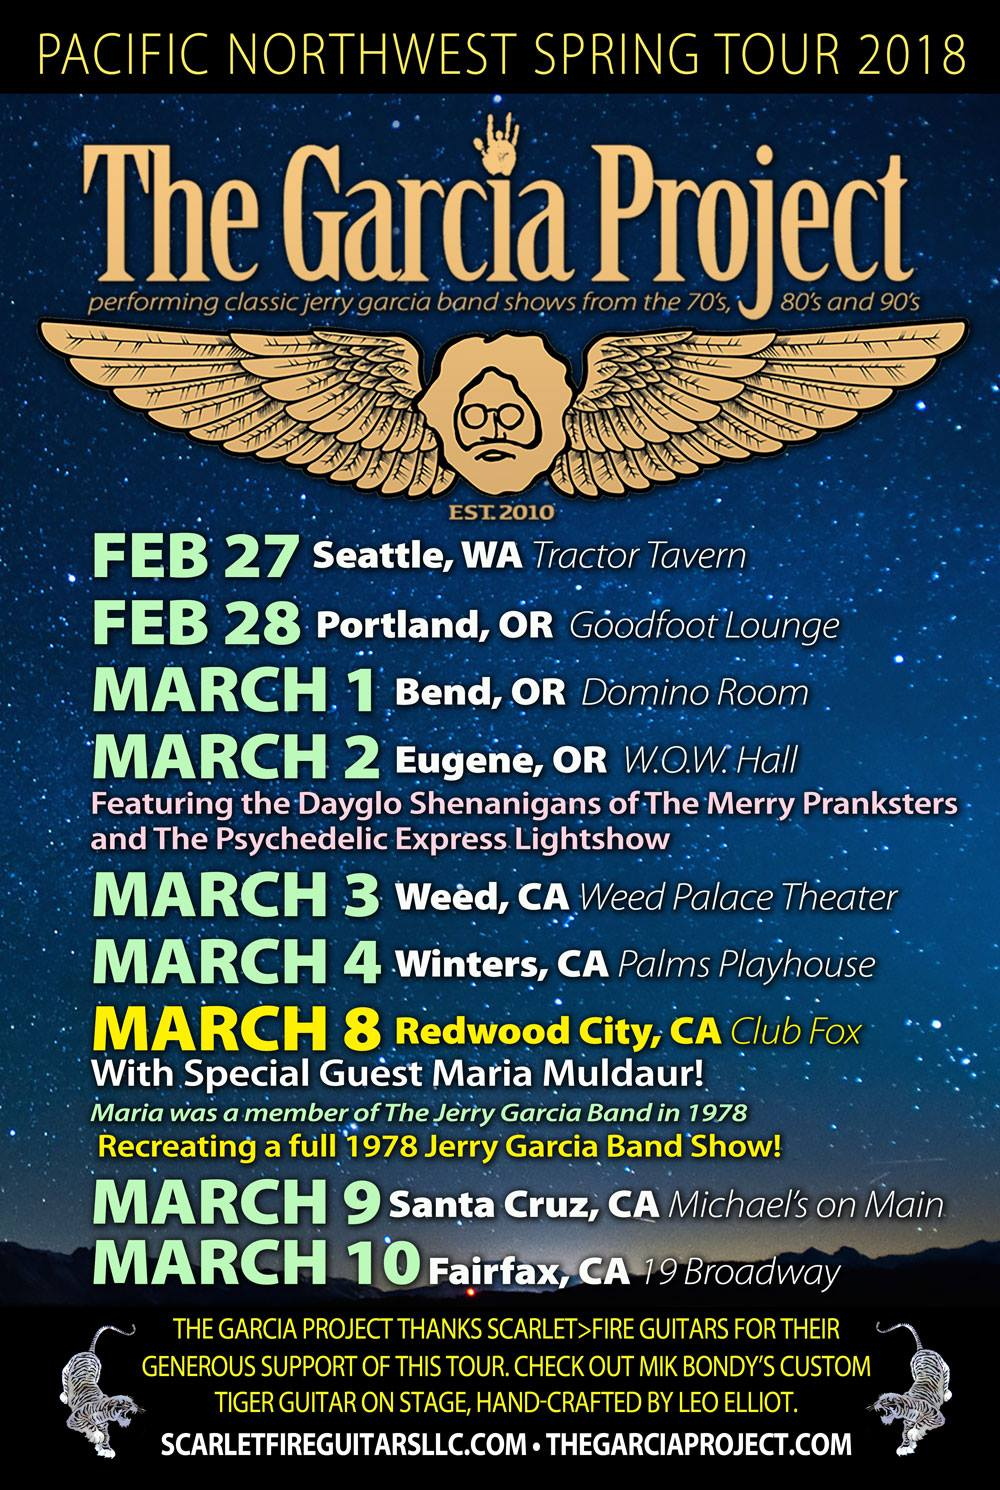 2018 - The Garcia Project Pacific Northwest Tour.jpg